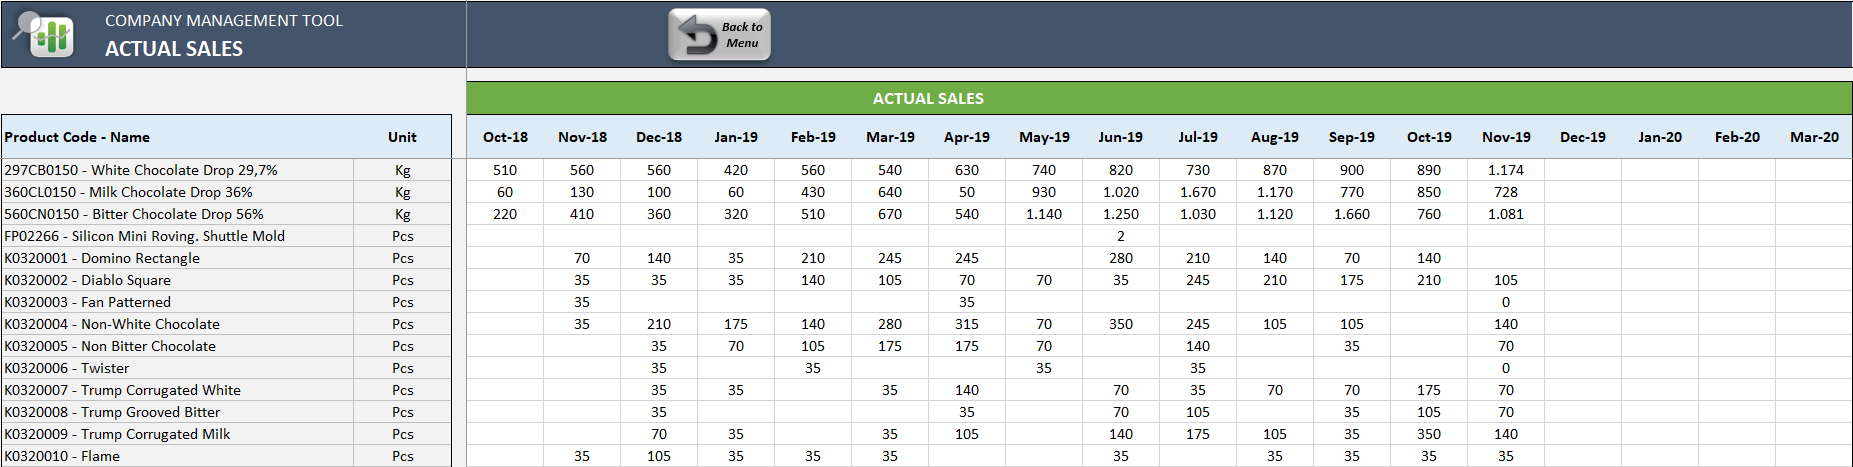 Small-Business-ERP-Template-06-Actual Sales